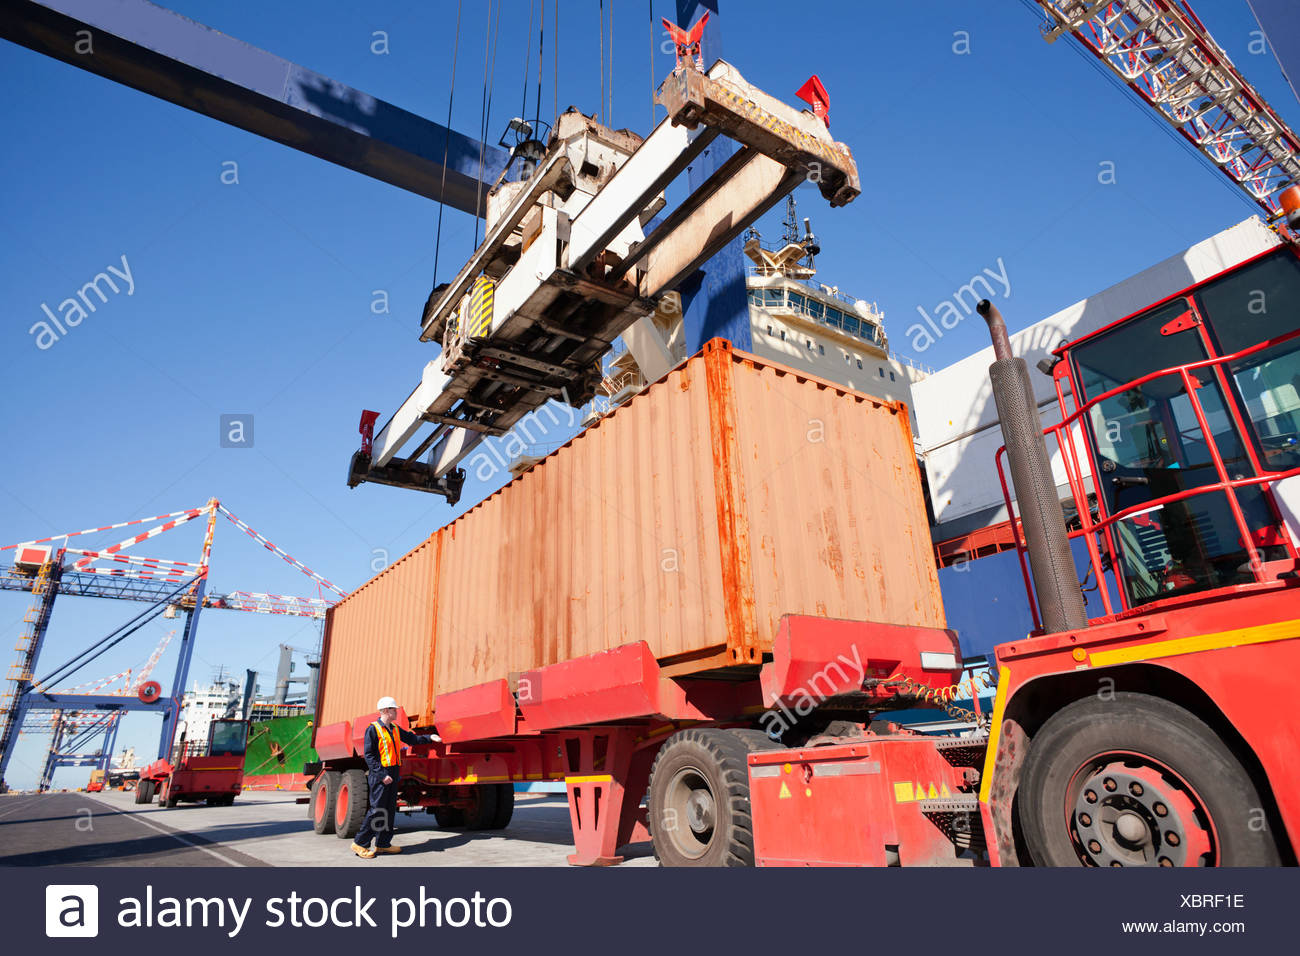 Crane unloading cargo container onto lorry at commercial dock - Stock Image